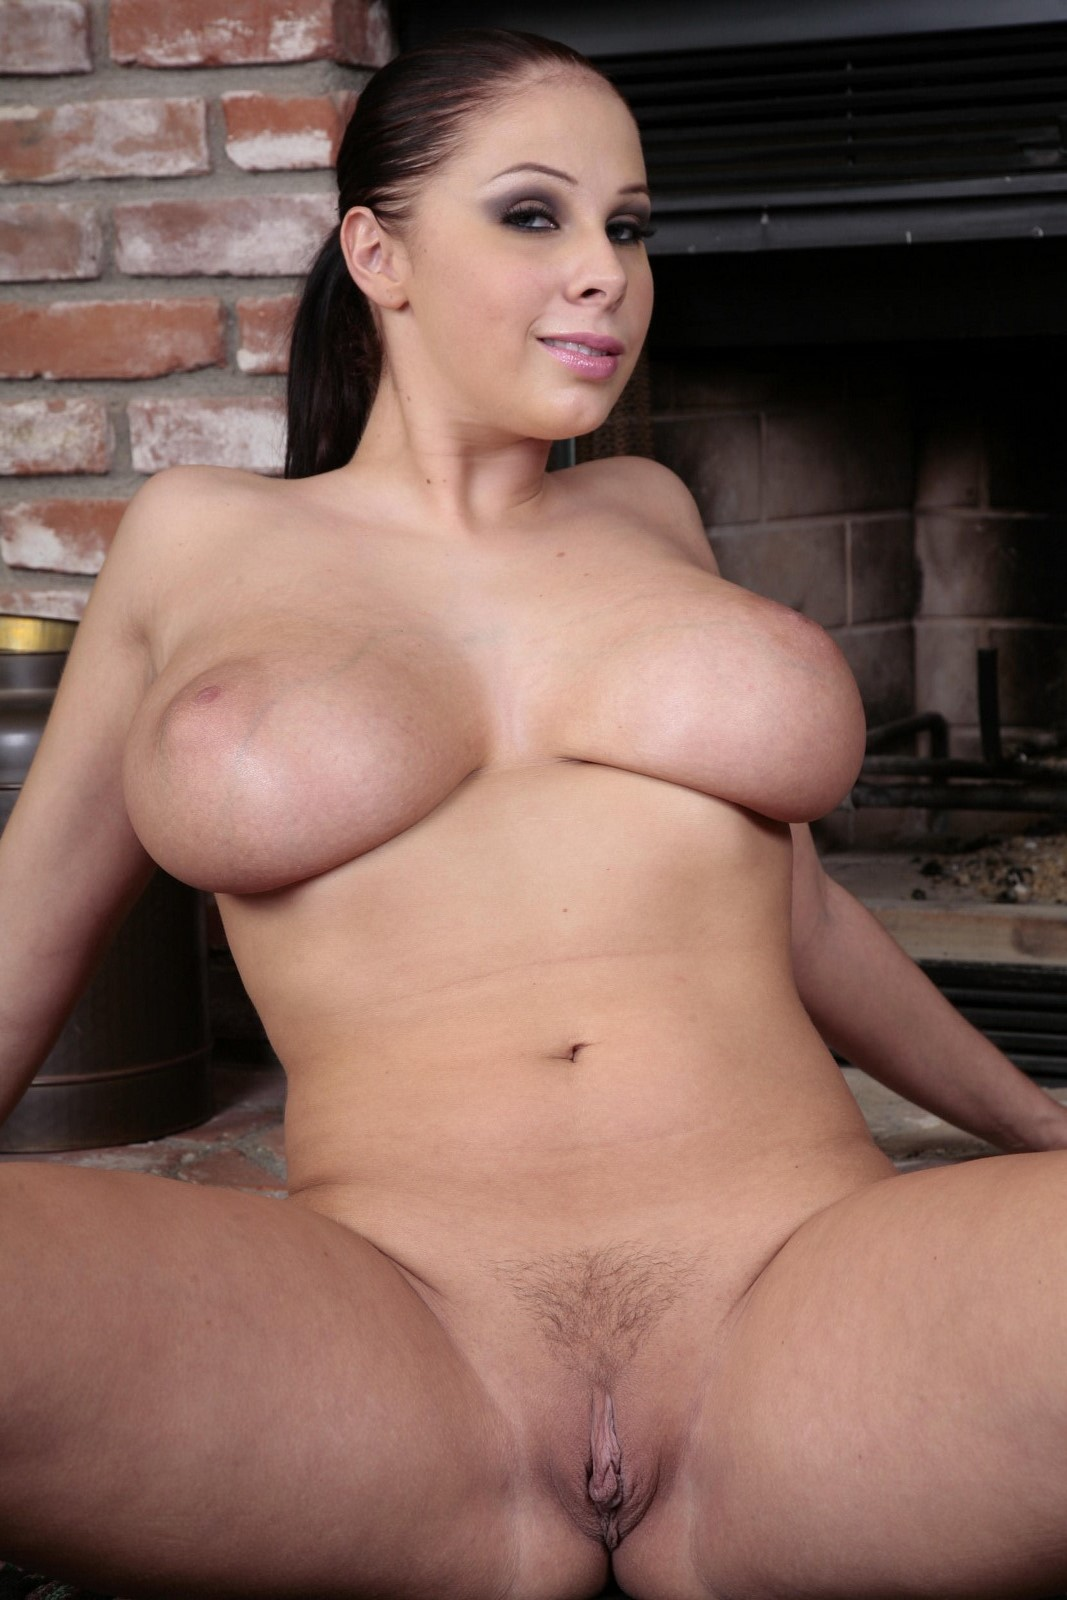 Gianna michaels pussy spread — img 13